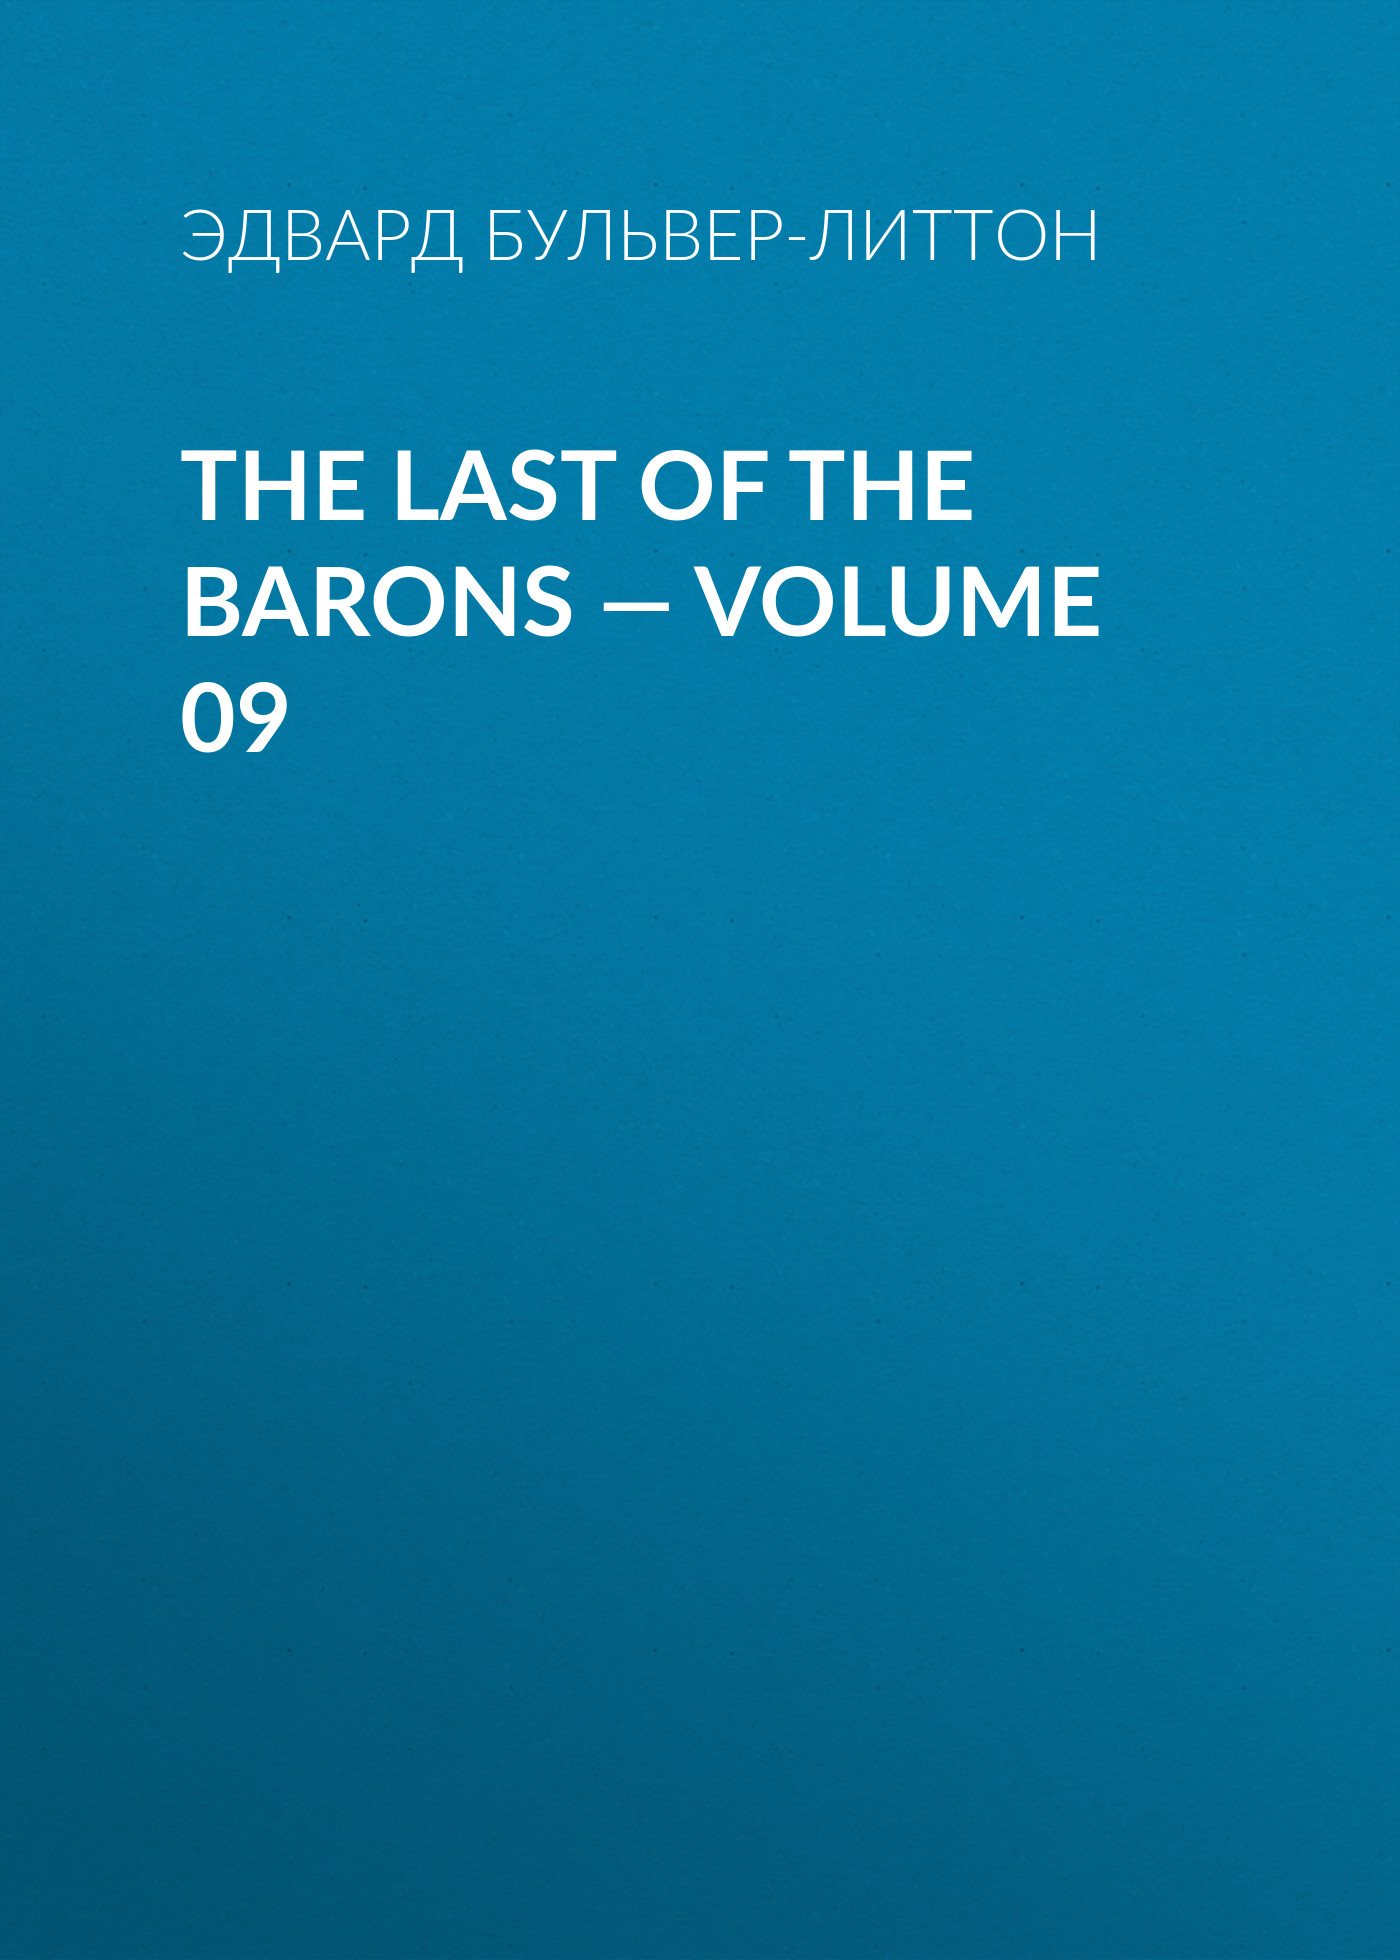 Эдвард Бульвер-Литтон The Last of the Barons — Volume 09 fayrene preston the barons of texas tess